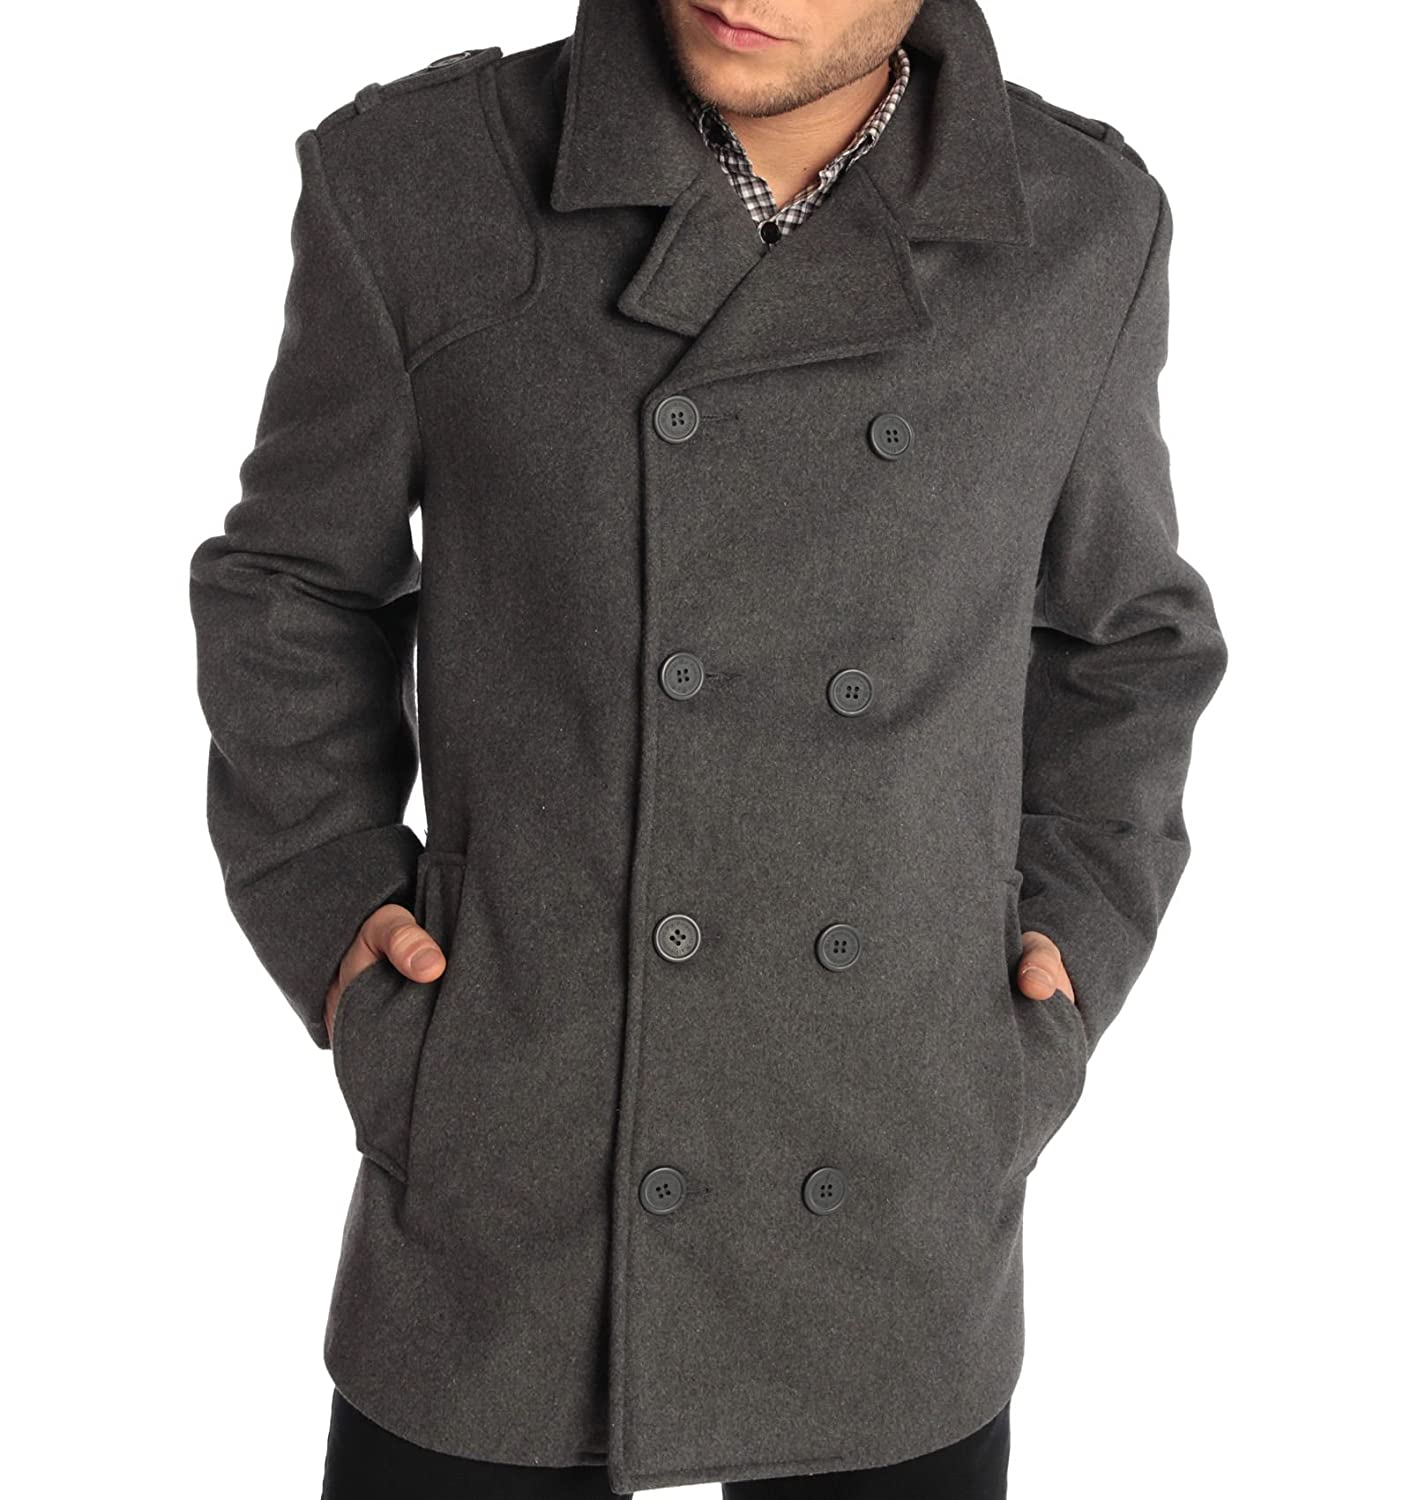 alpine swiss Jake Mens Wool Pea Coat Double Breasted Jacket By Alpine Swiss